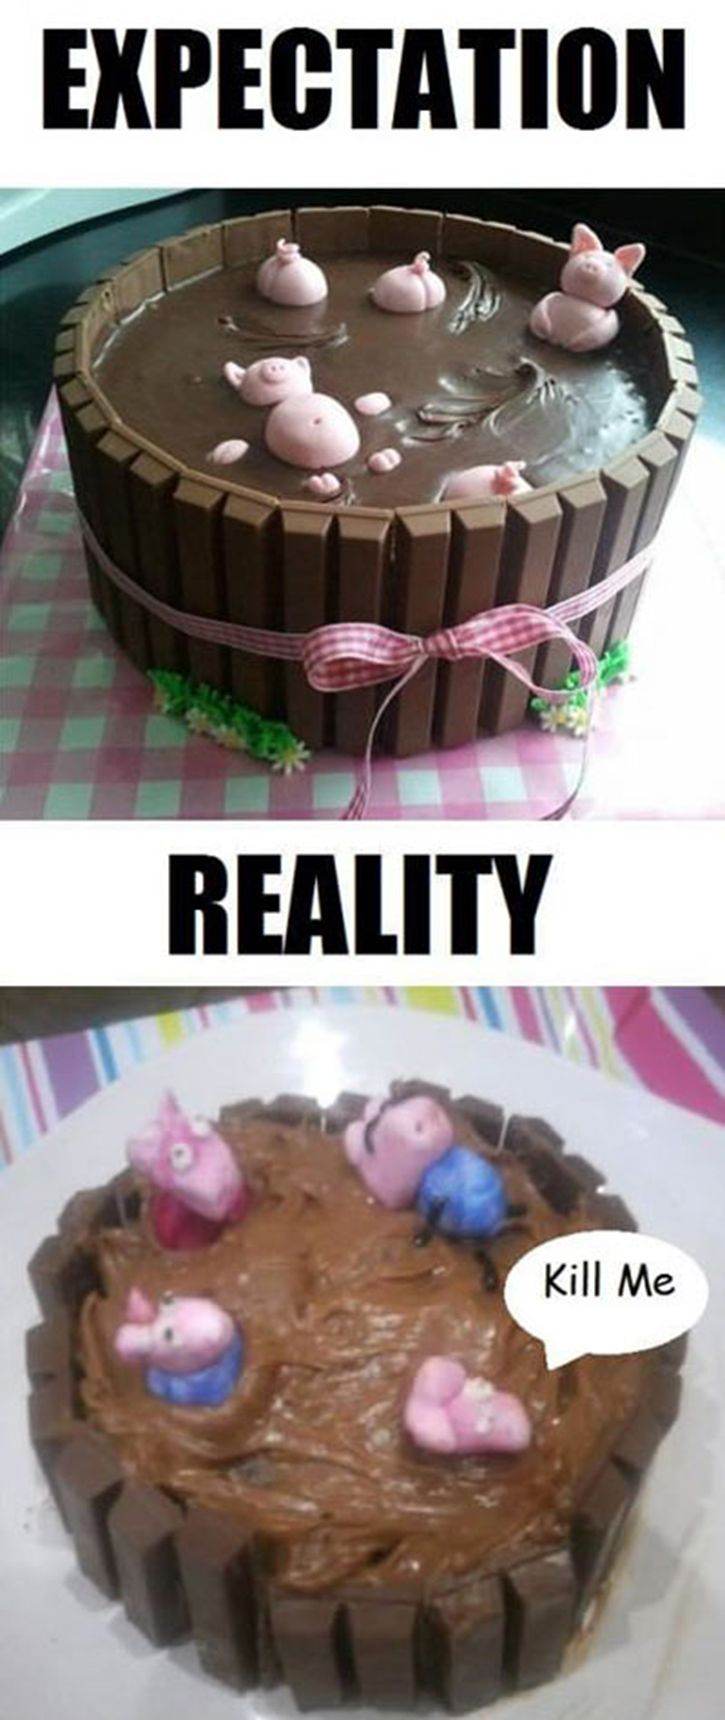 8 best expectation vs reality images on Pinterest | Expectation ...